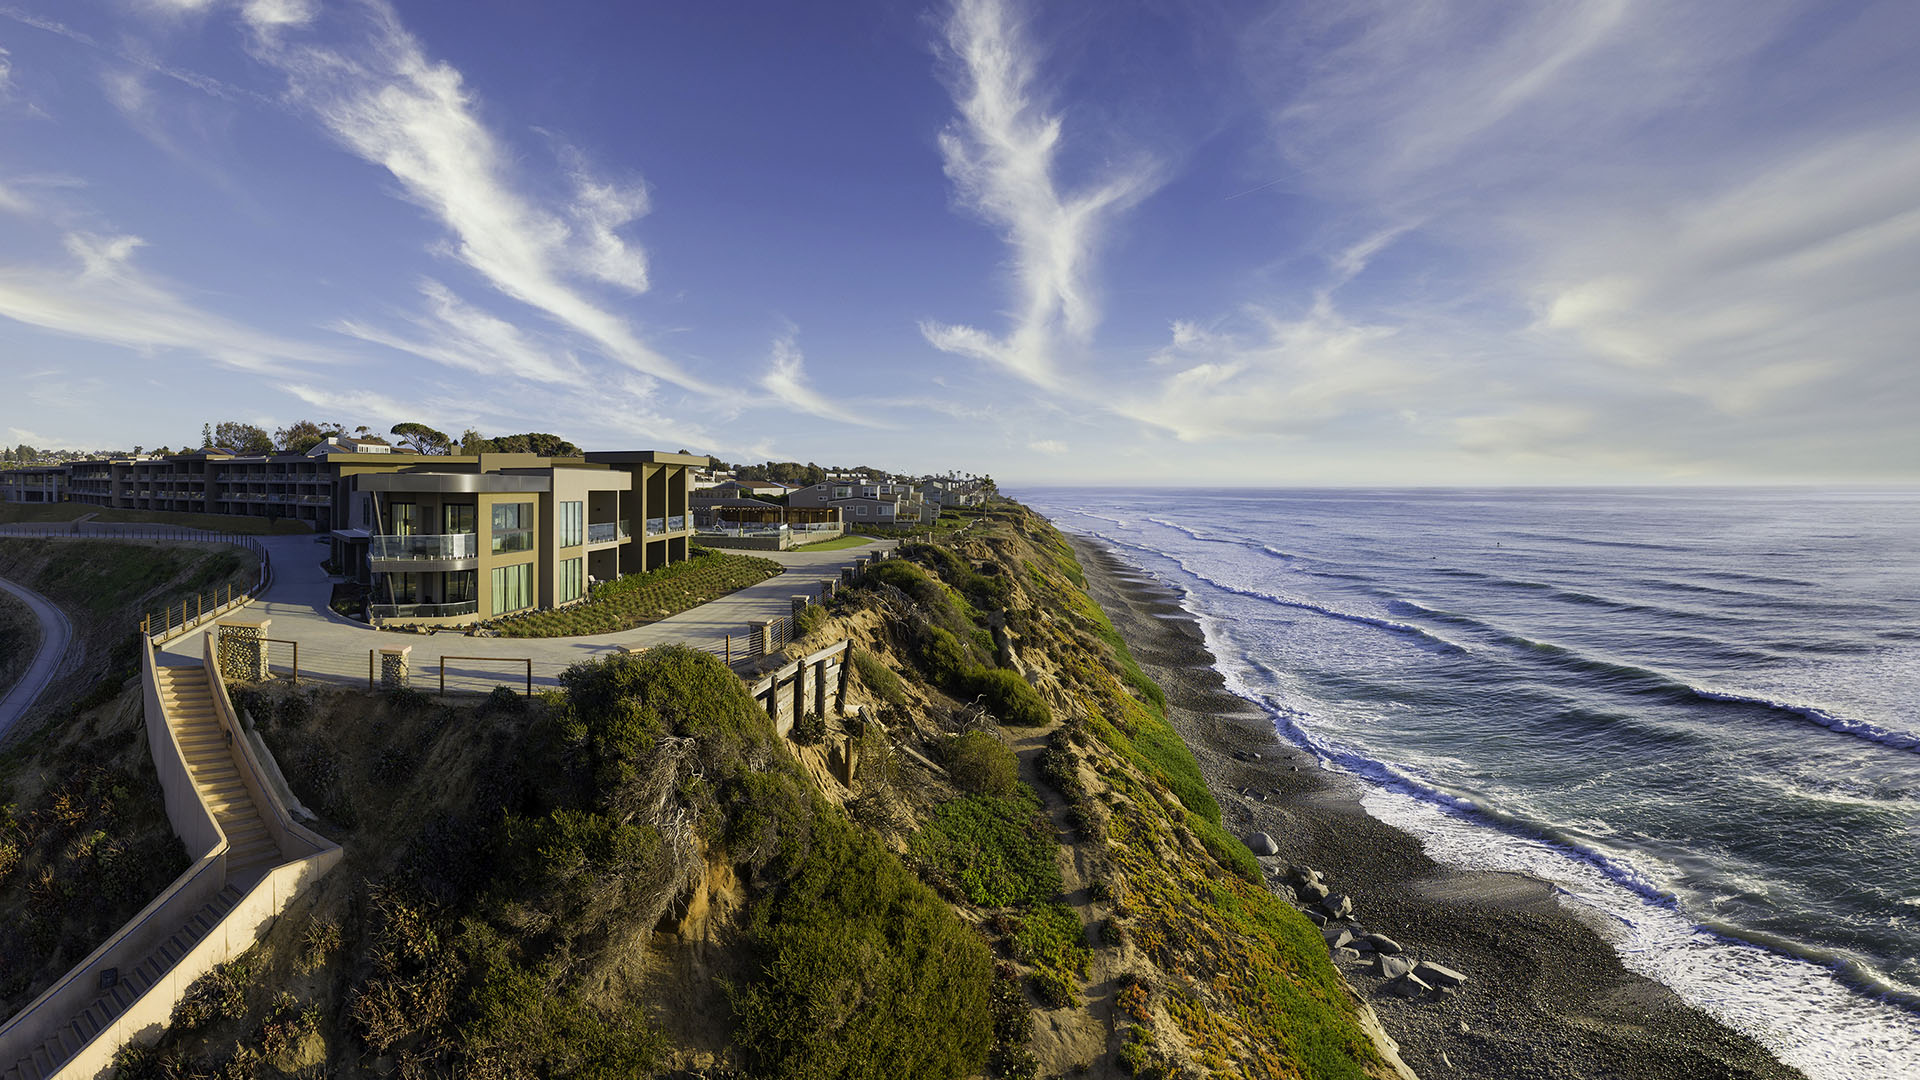 Alila Marea Beach Resort Encinitas